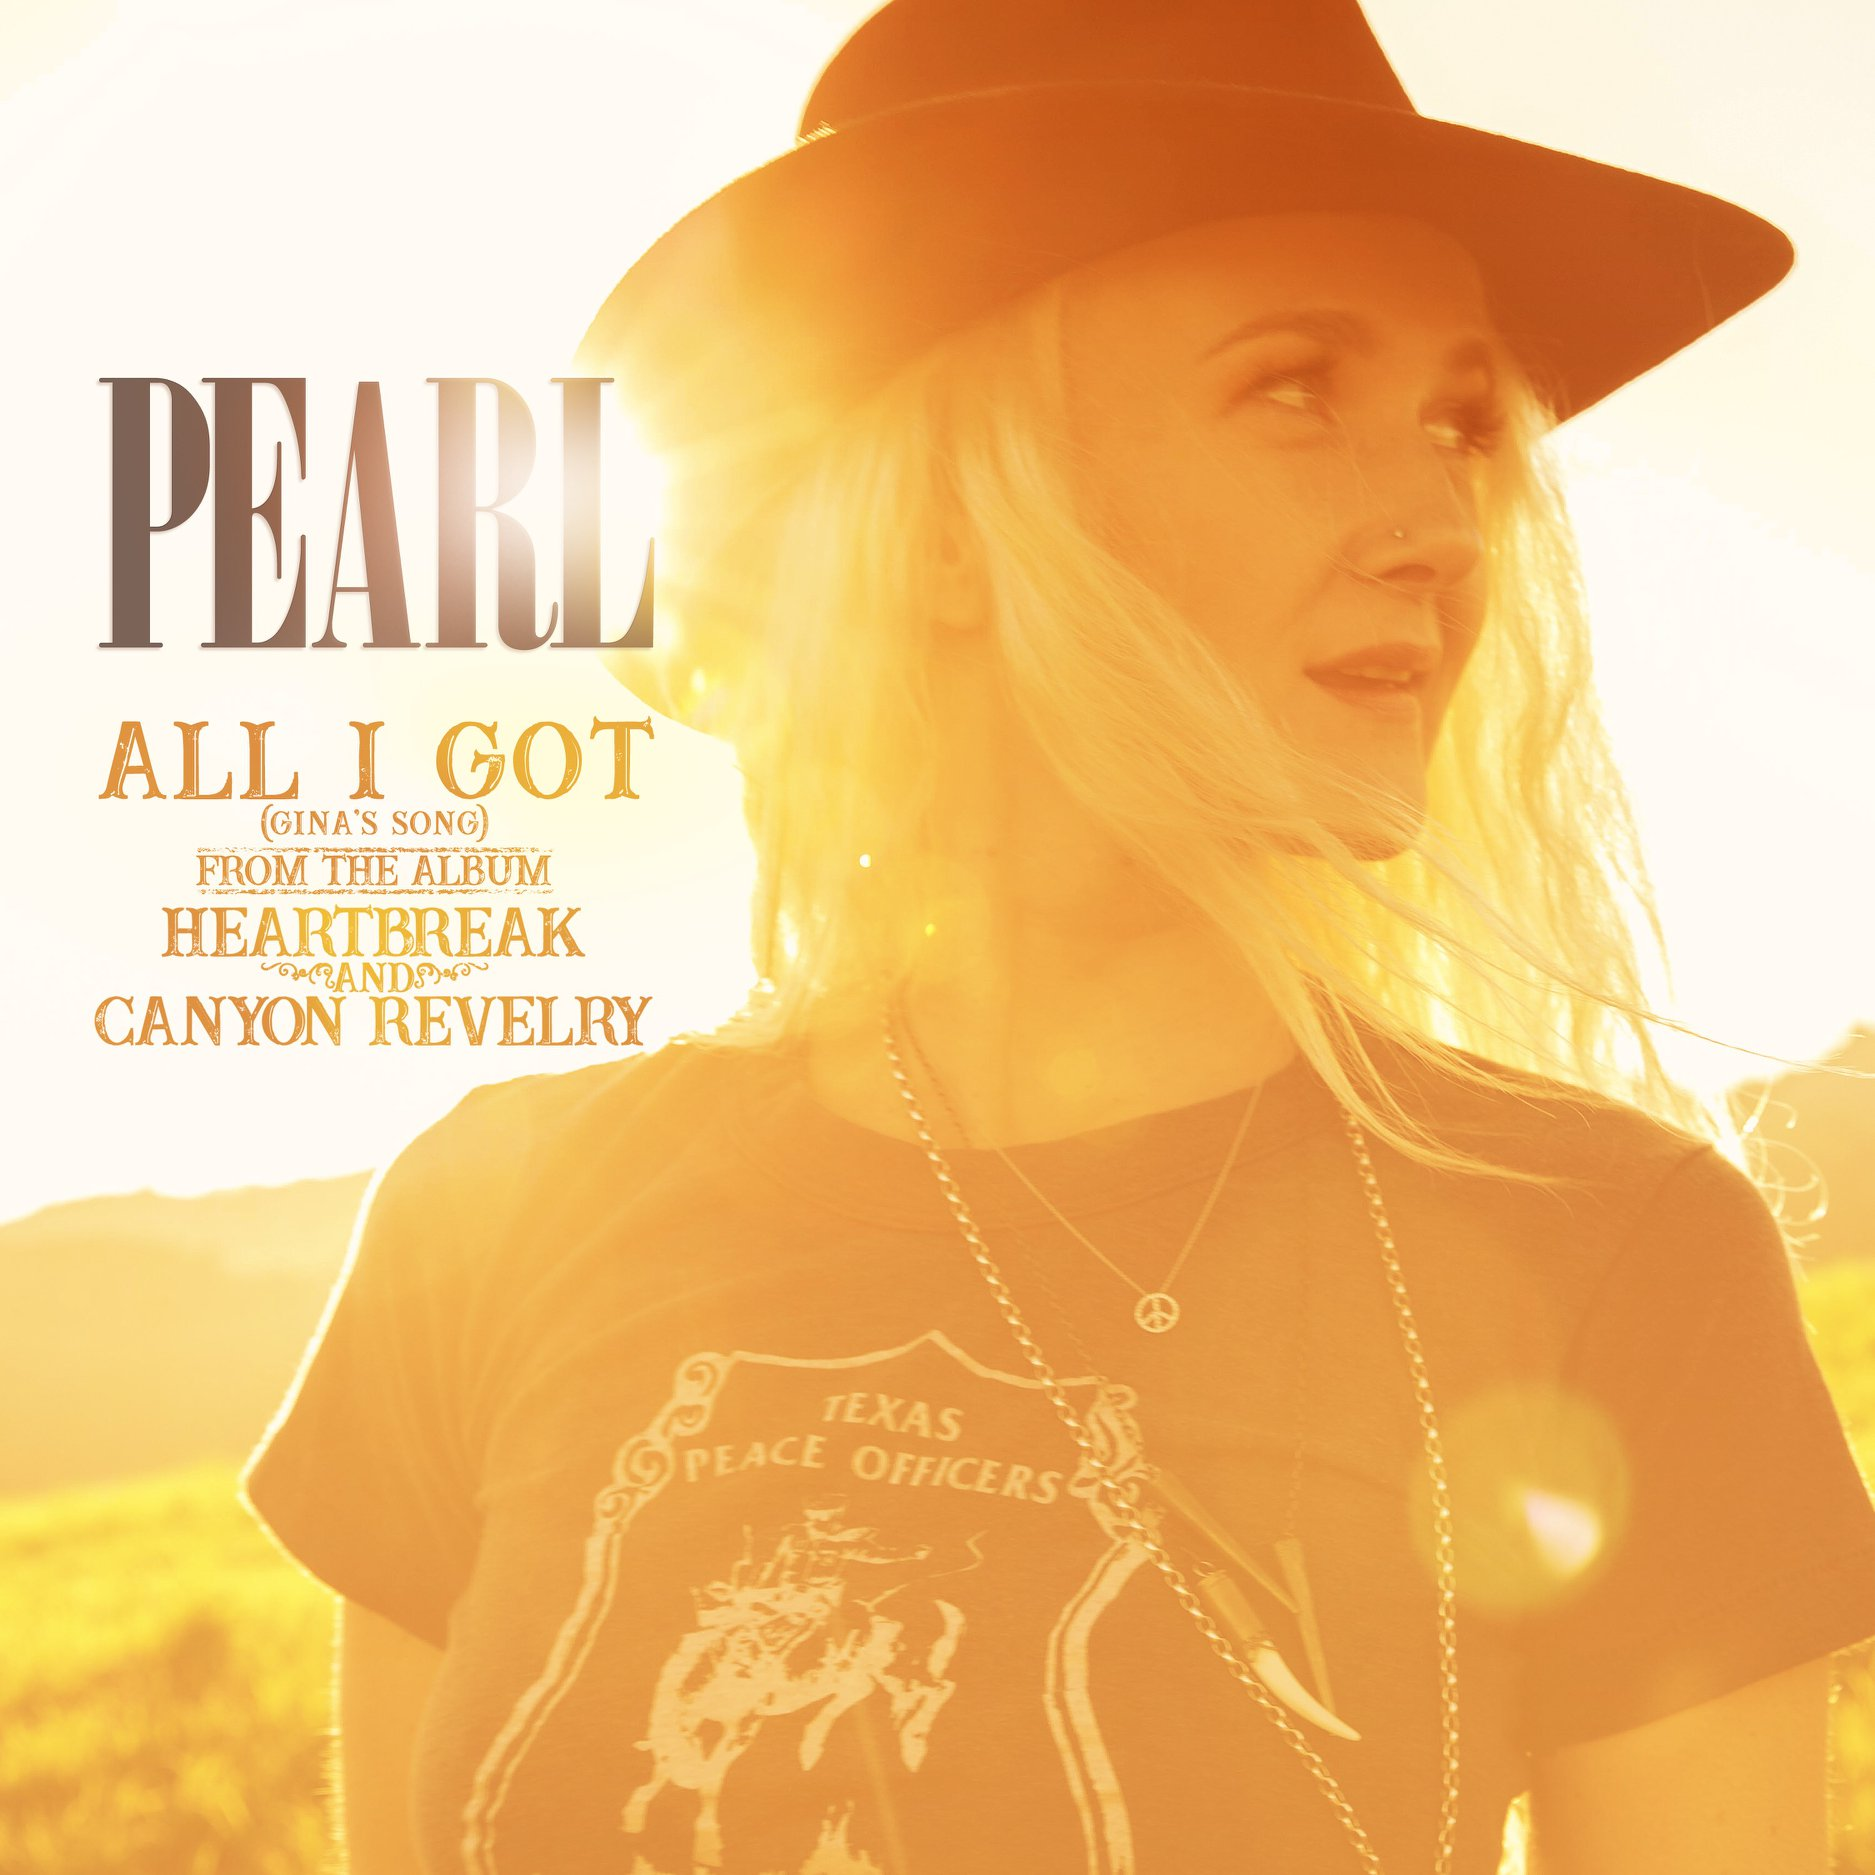 'All I Got (Gina's Song)'OUT NOW! - Check out Pearl's second single off of his forthcoming record, 'Heartbreak and Canyon Revelry' (June 15th release)! Click below to Stream / Purchase!